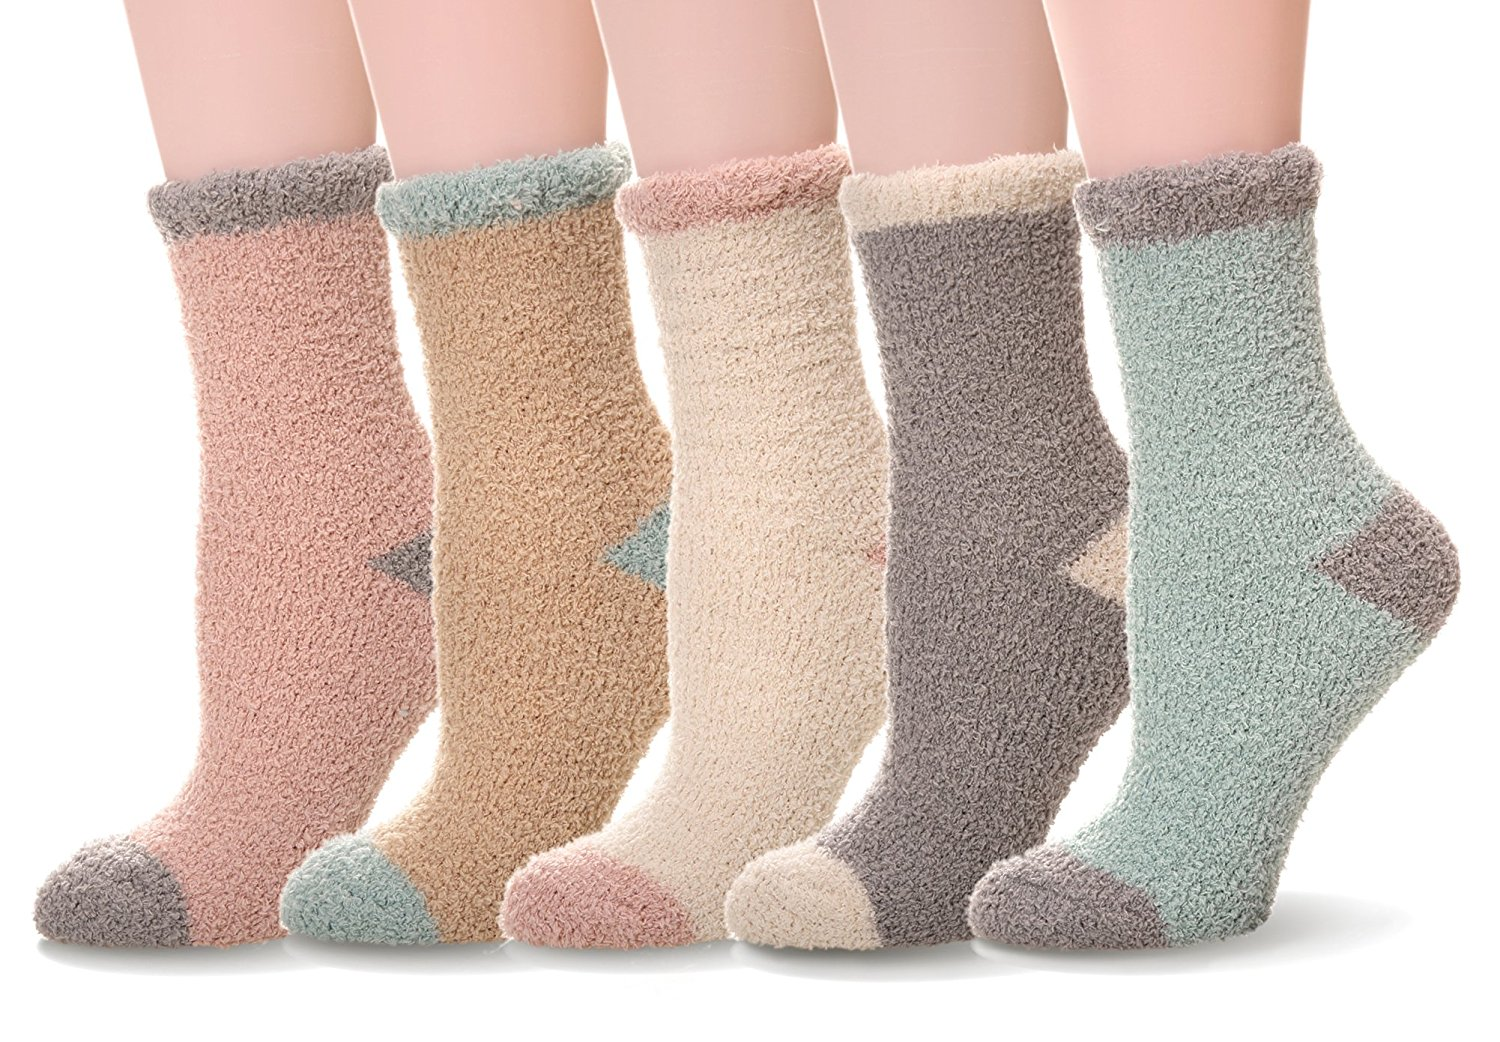 WENER Women's 5 pairs Super Soft Microfiber Fuzzy Winter Warm Slipper Home Socks